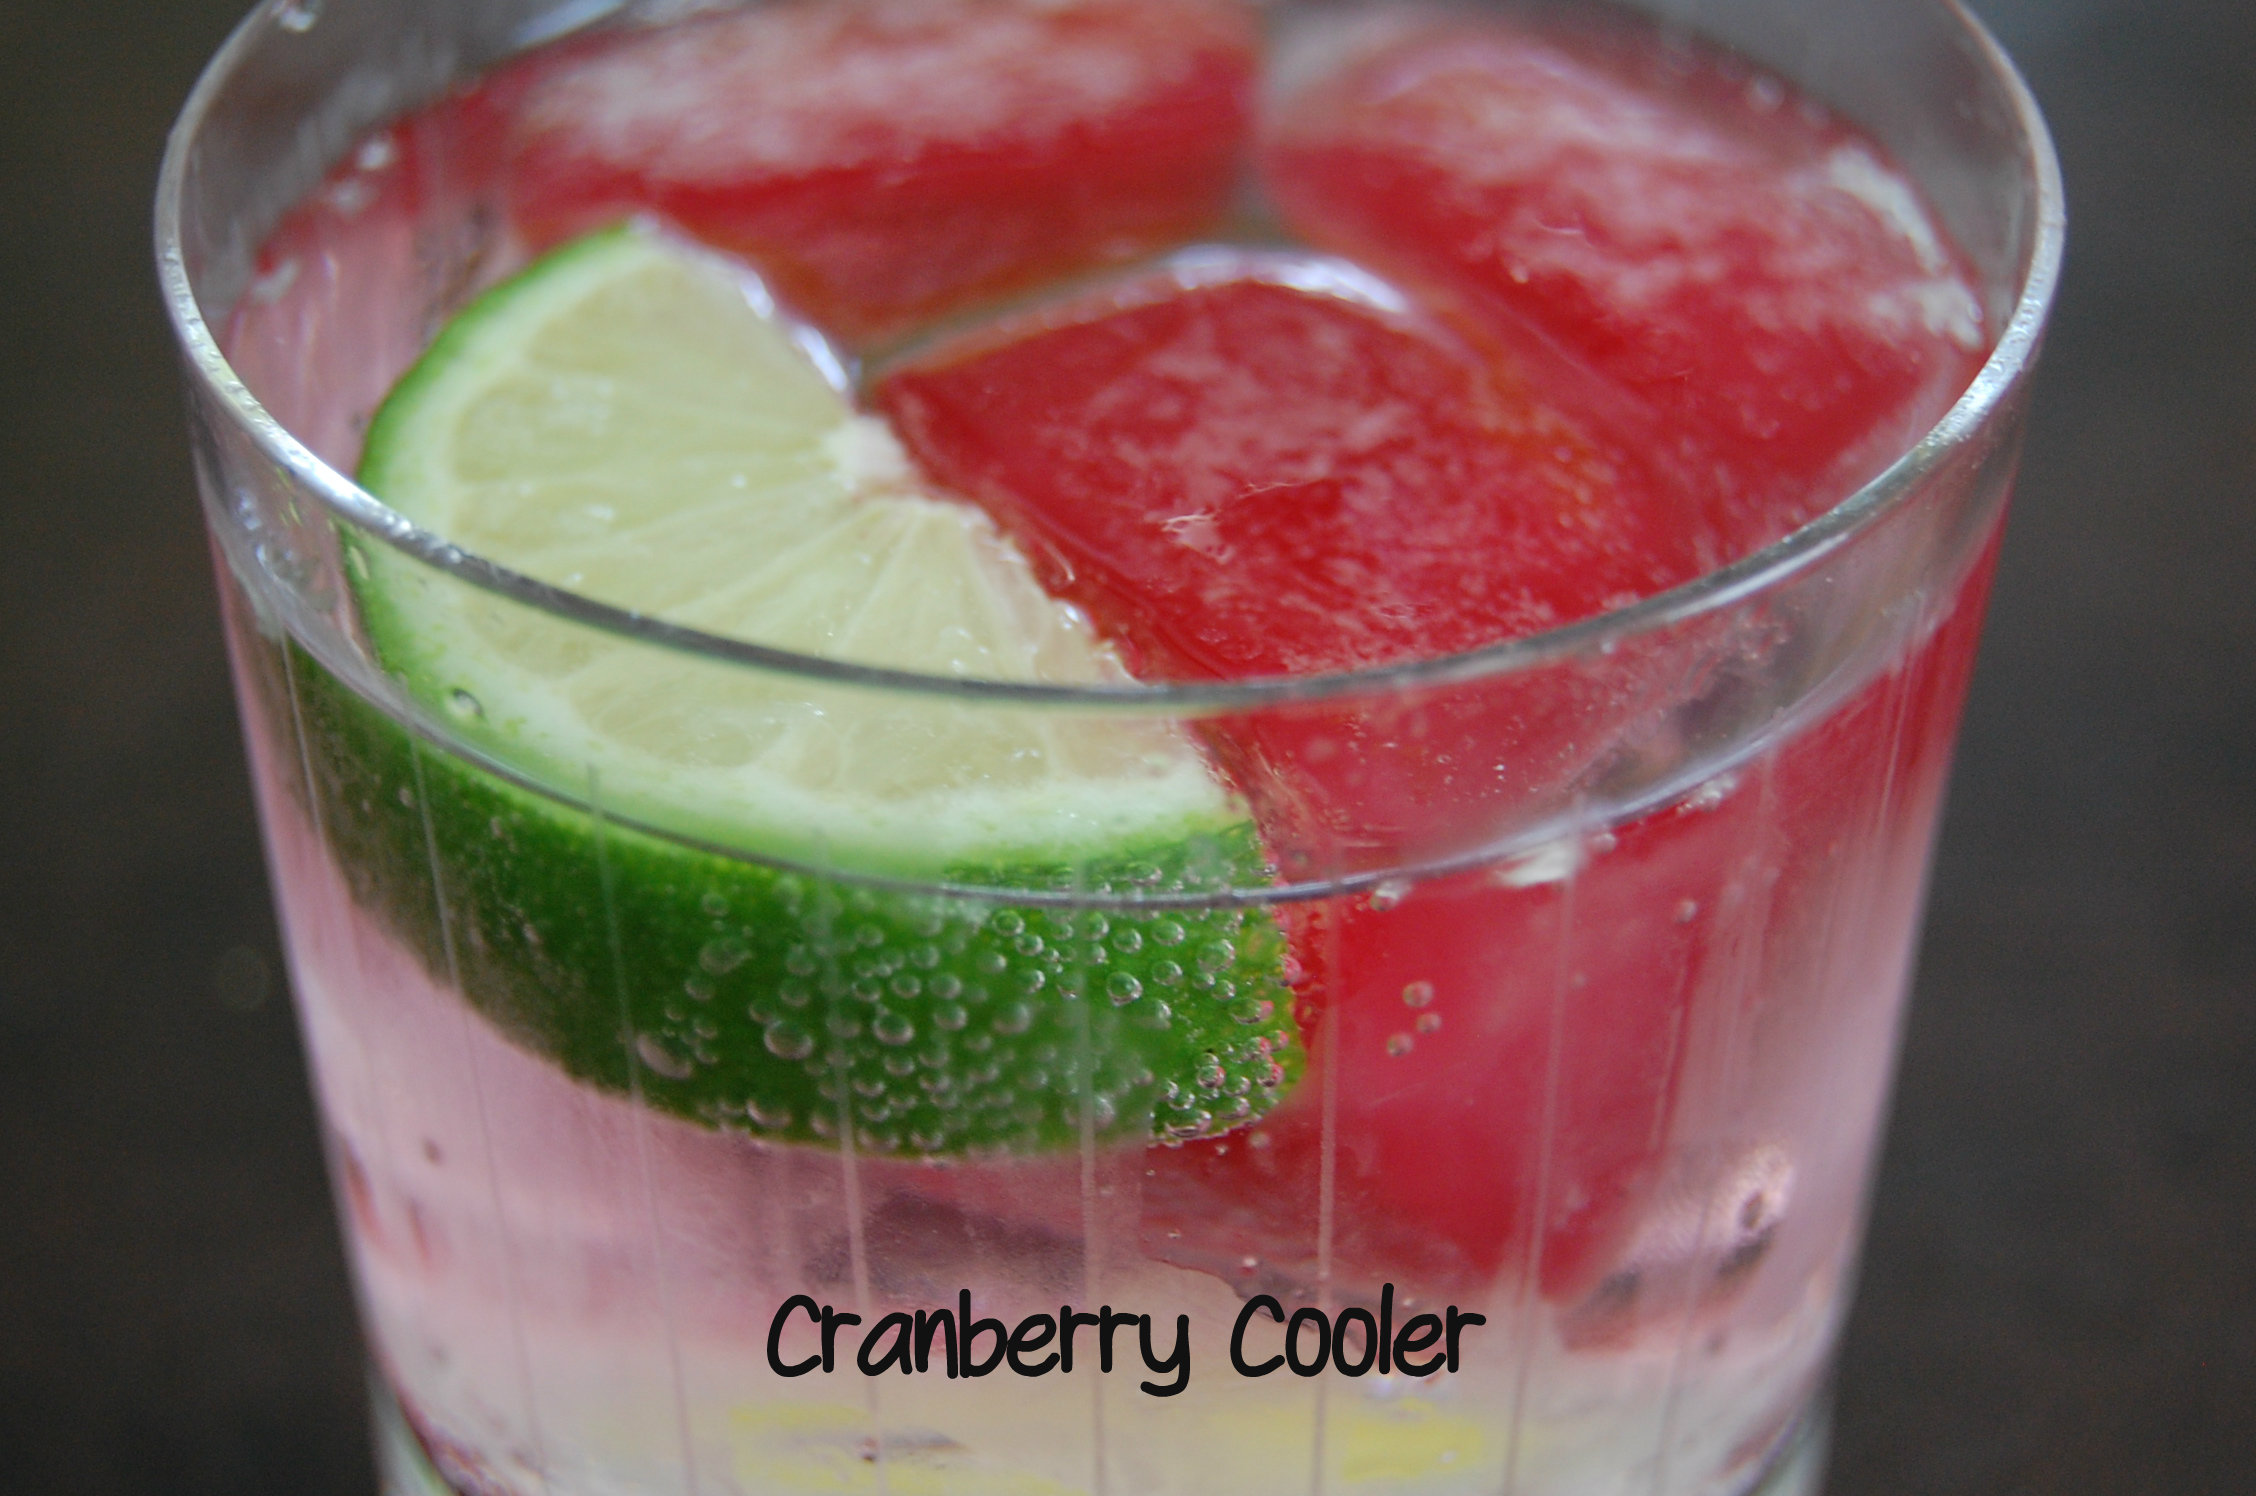 Cranberry Cooler is a refreshing non-alcoholic sipper perfect for hot summer days. Loaded with cranberry flavor you'll love this beverage!